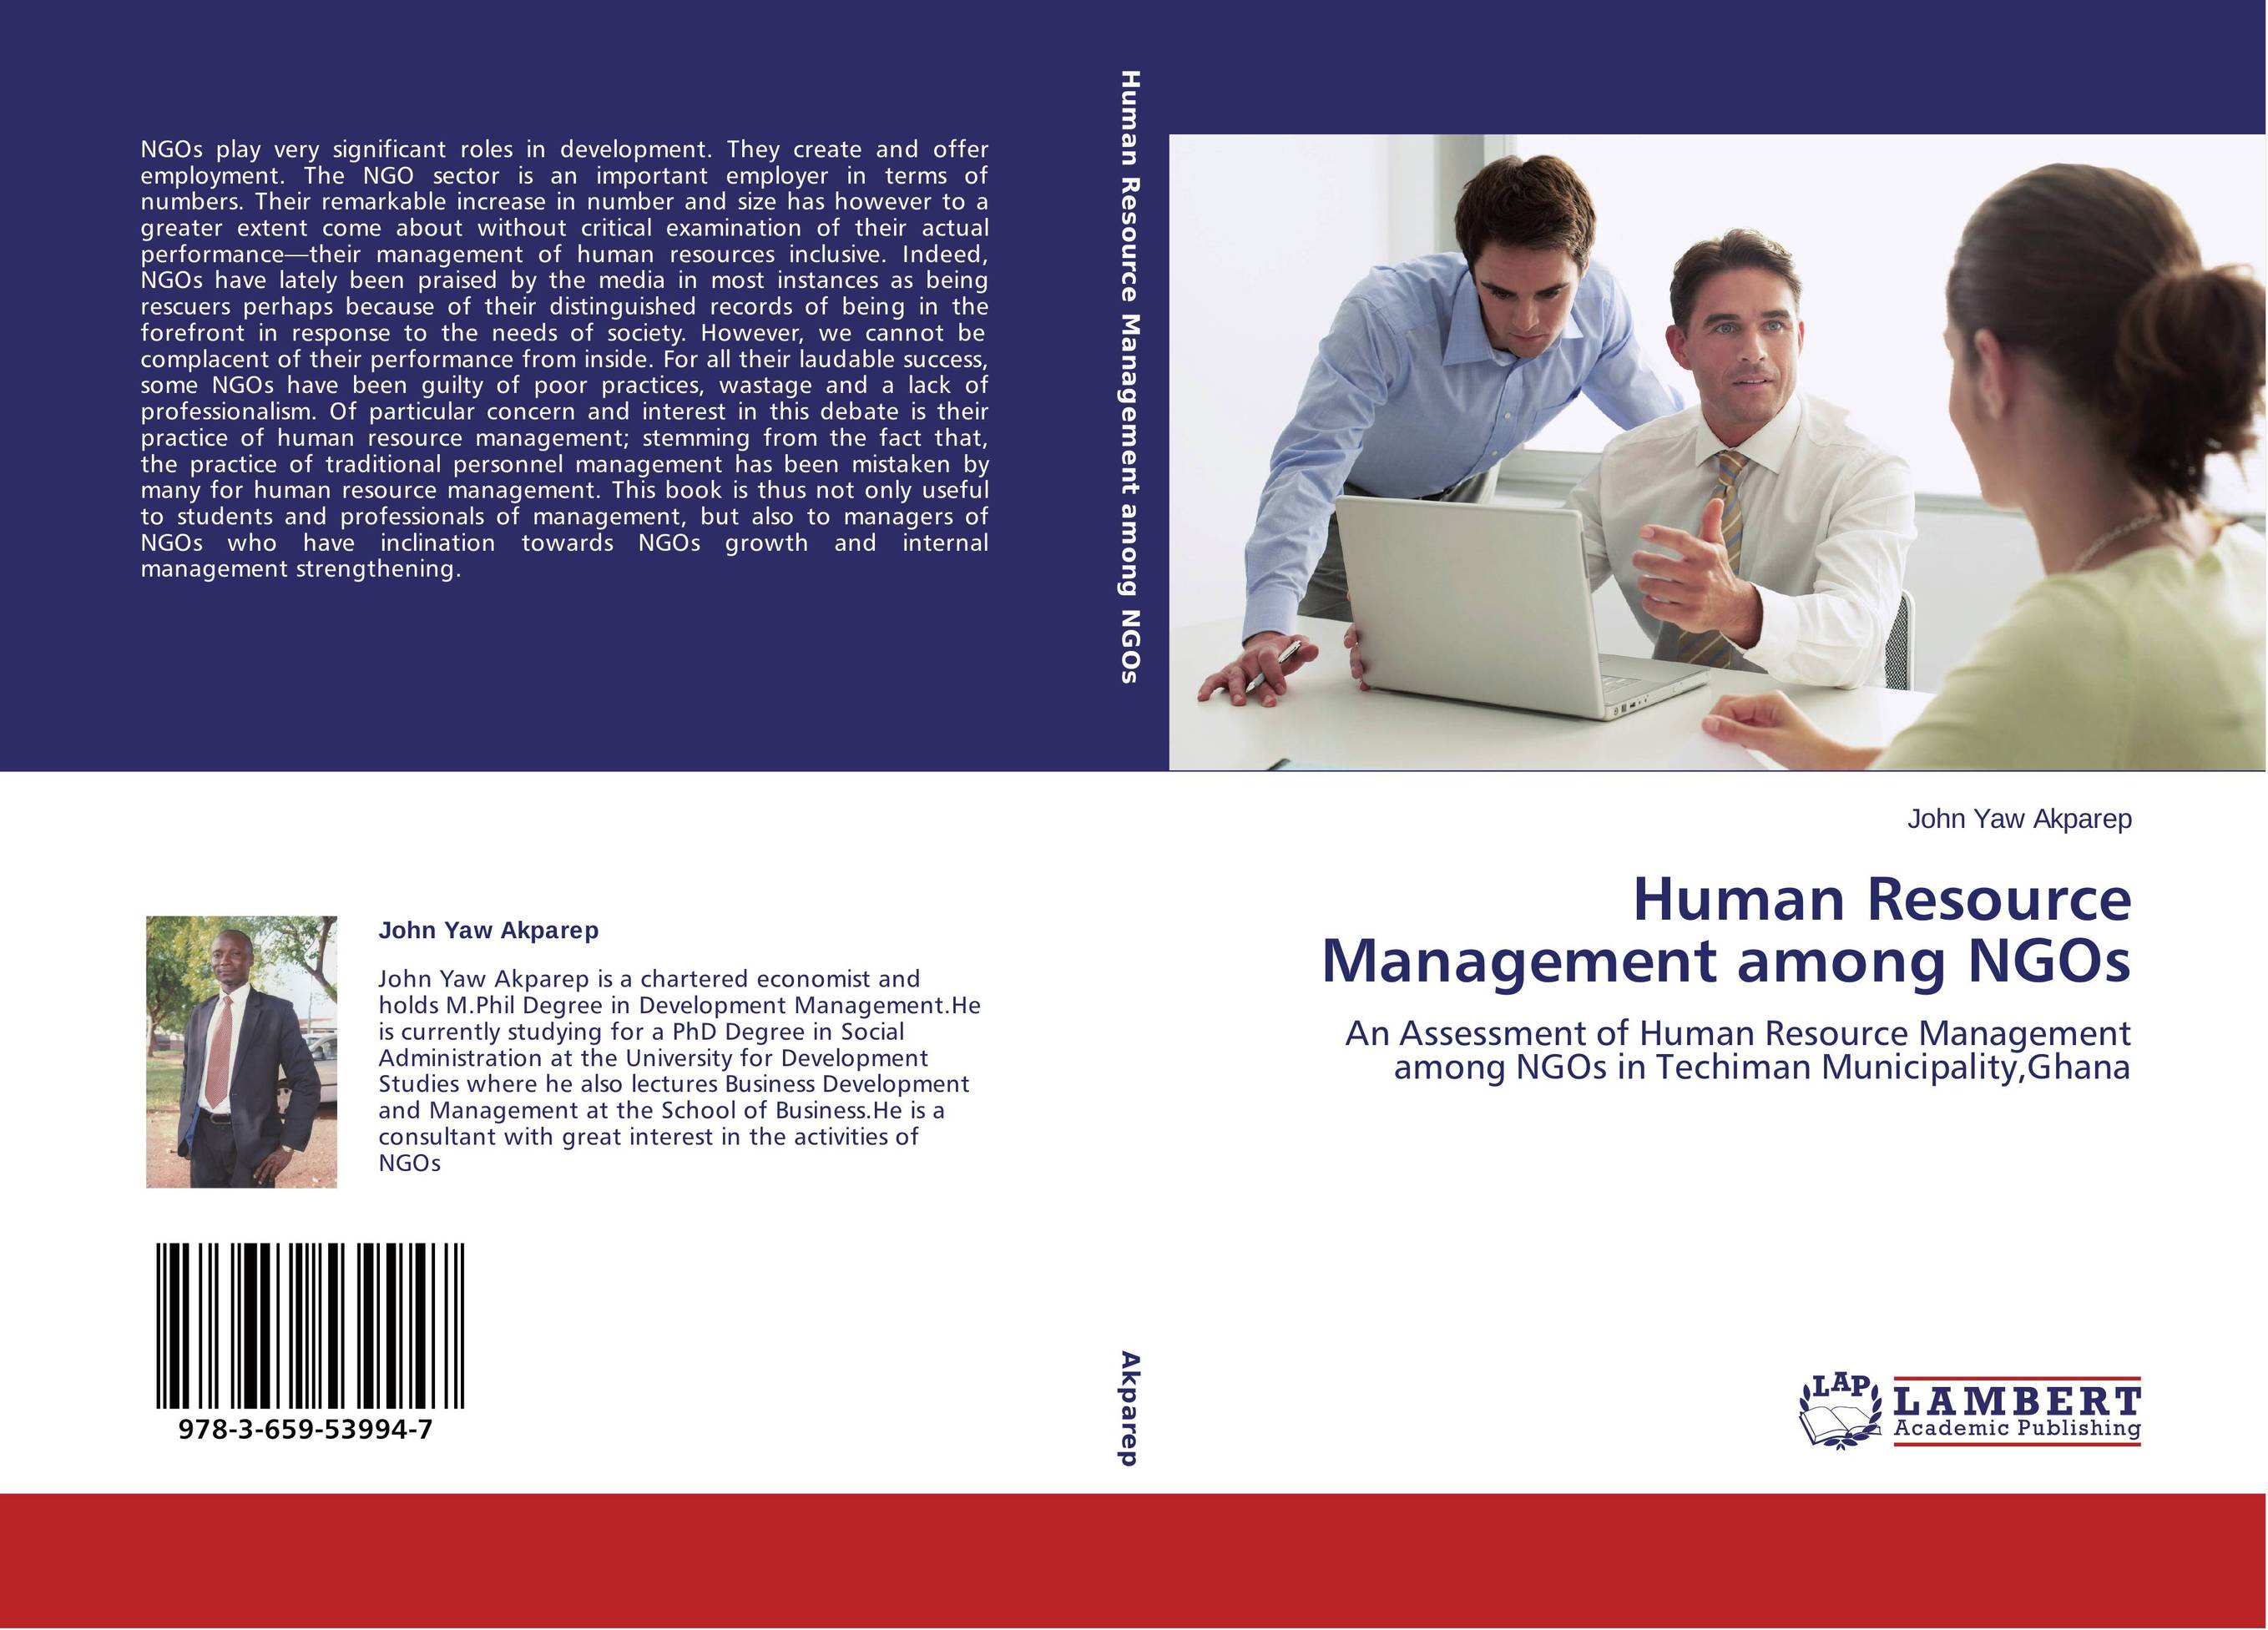 human resource management self reflection The ma in organizational leadership with a human resources concentration is designed to enhance the hr management and general leadership skills of human resource professionals.